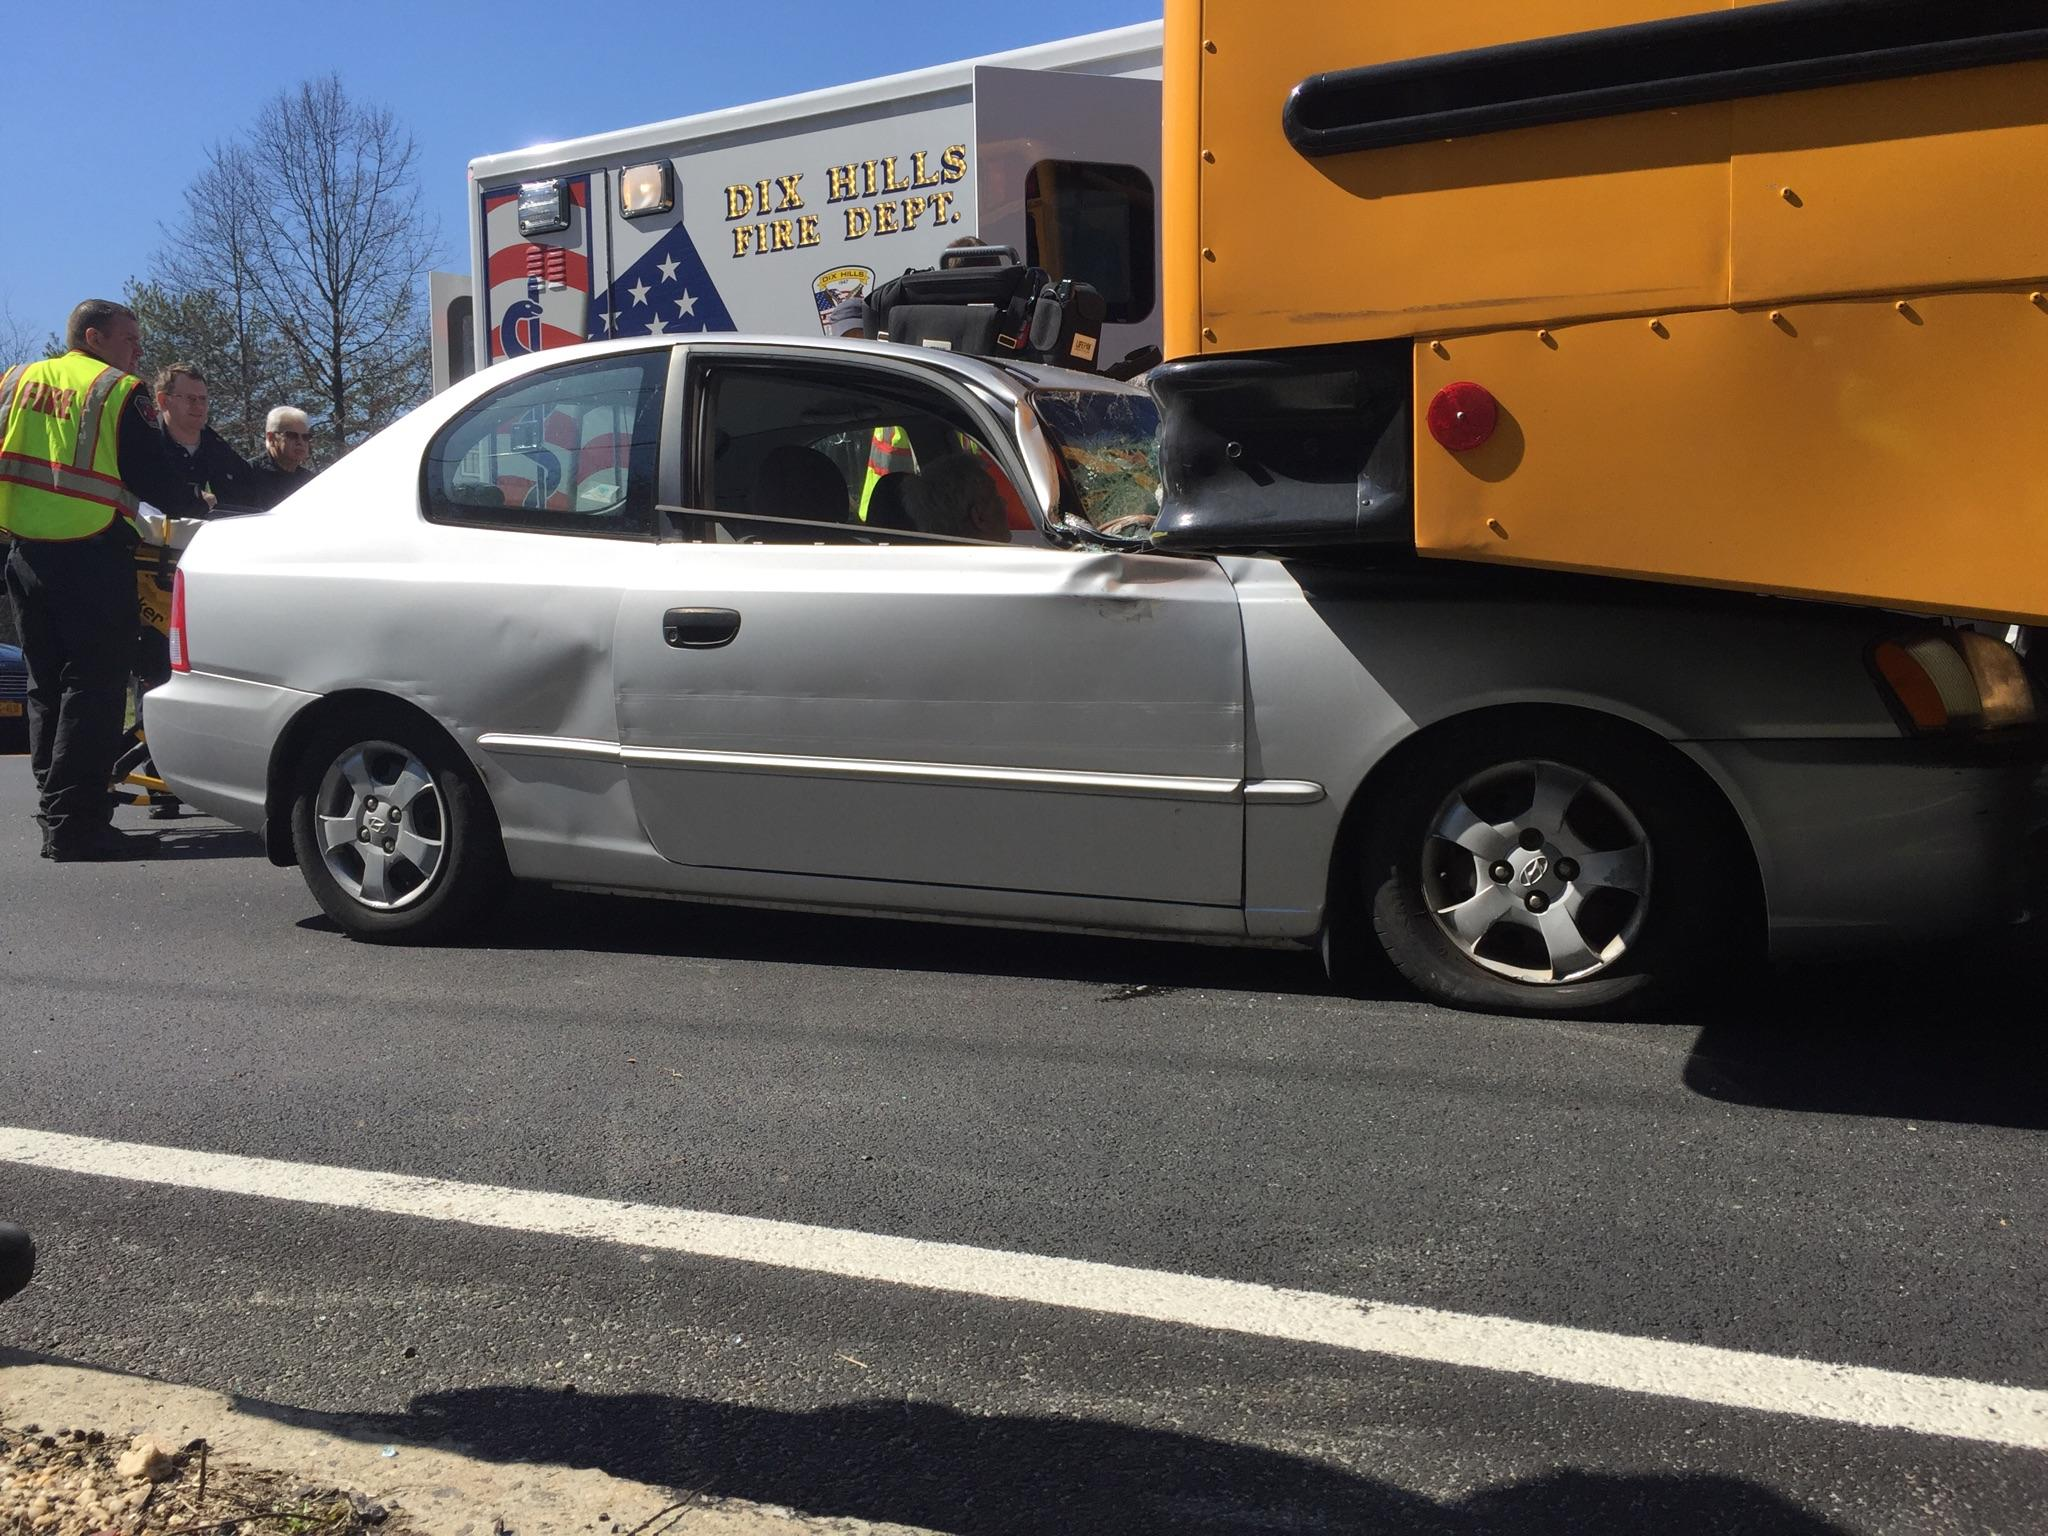 Suffolk   police and fire officials said a 91-year-old Wheatley Heights man crashed his car into a school bus in Dix Hills last Thursday. Photo courtesy of Dix Hills Fire Department